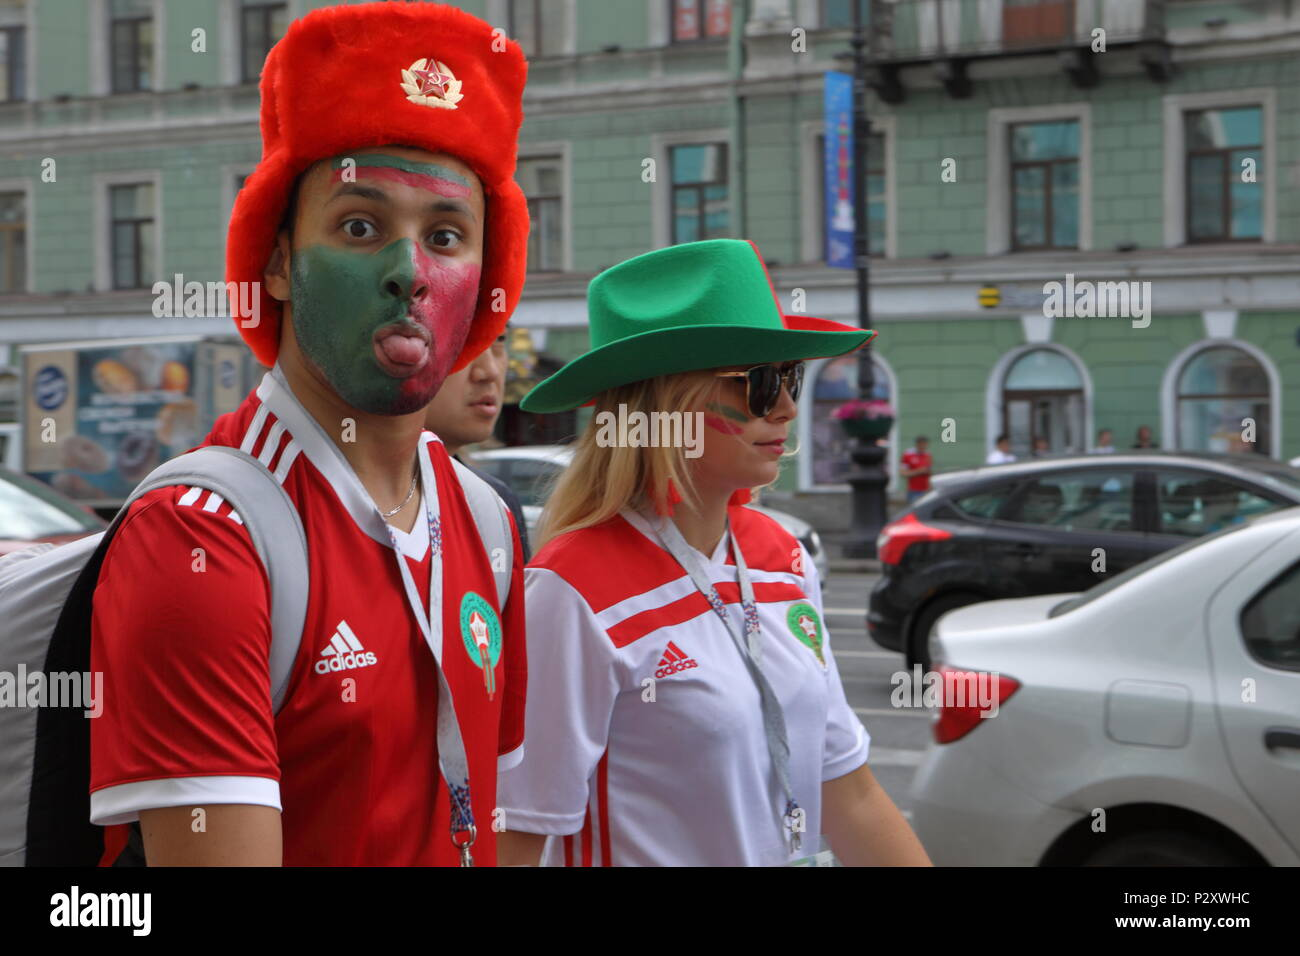 St. Petersburg, Russia - June 15, 2018: Moroccan football fans on the streets of Saint Petersburg on the day of first match of FIFA World Cup 2018 in  - Stock Image